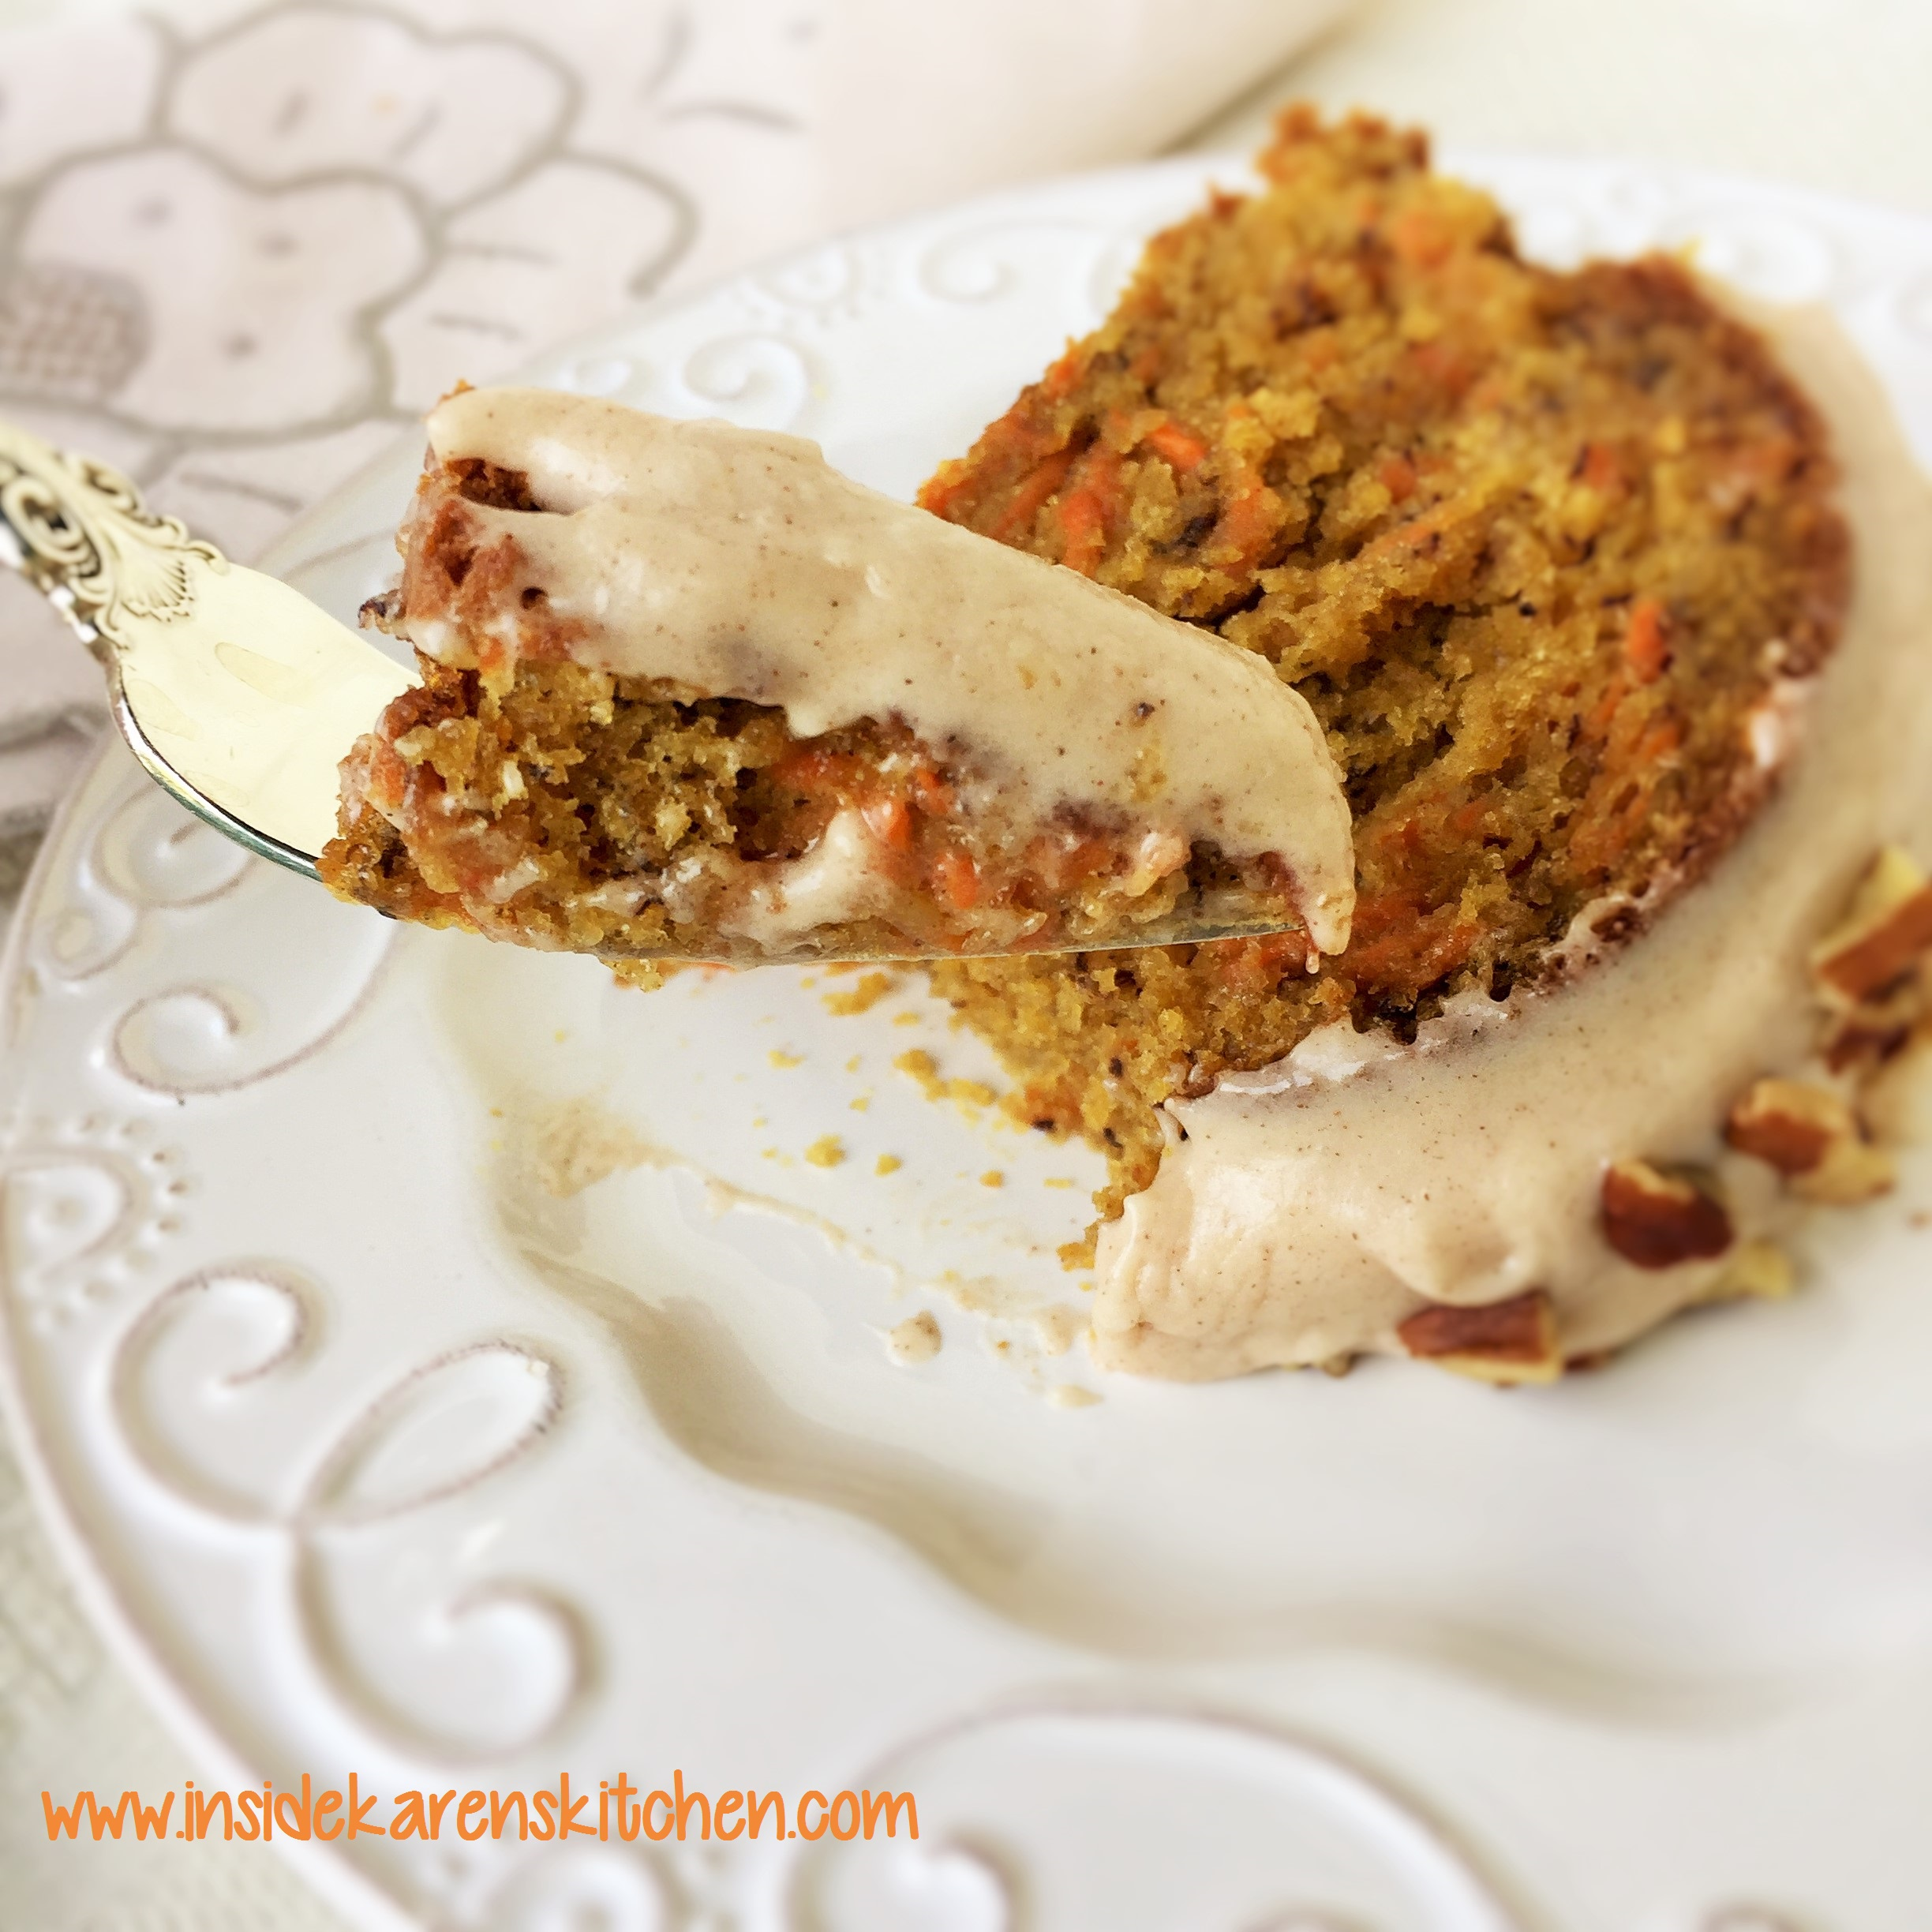 Carrot Banana Cake with Cinnamon Cream Cheese Frosting   Inside     Carrot Banana Cake with Cinnamon Cream Cheese Frosting 3